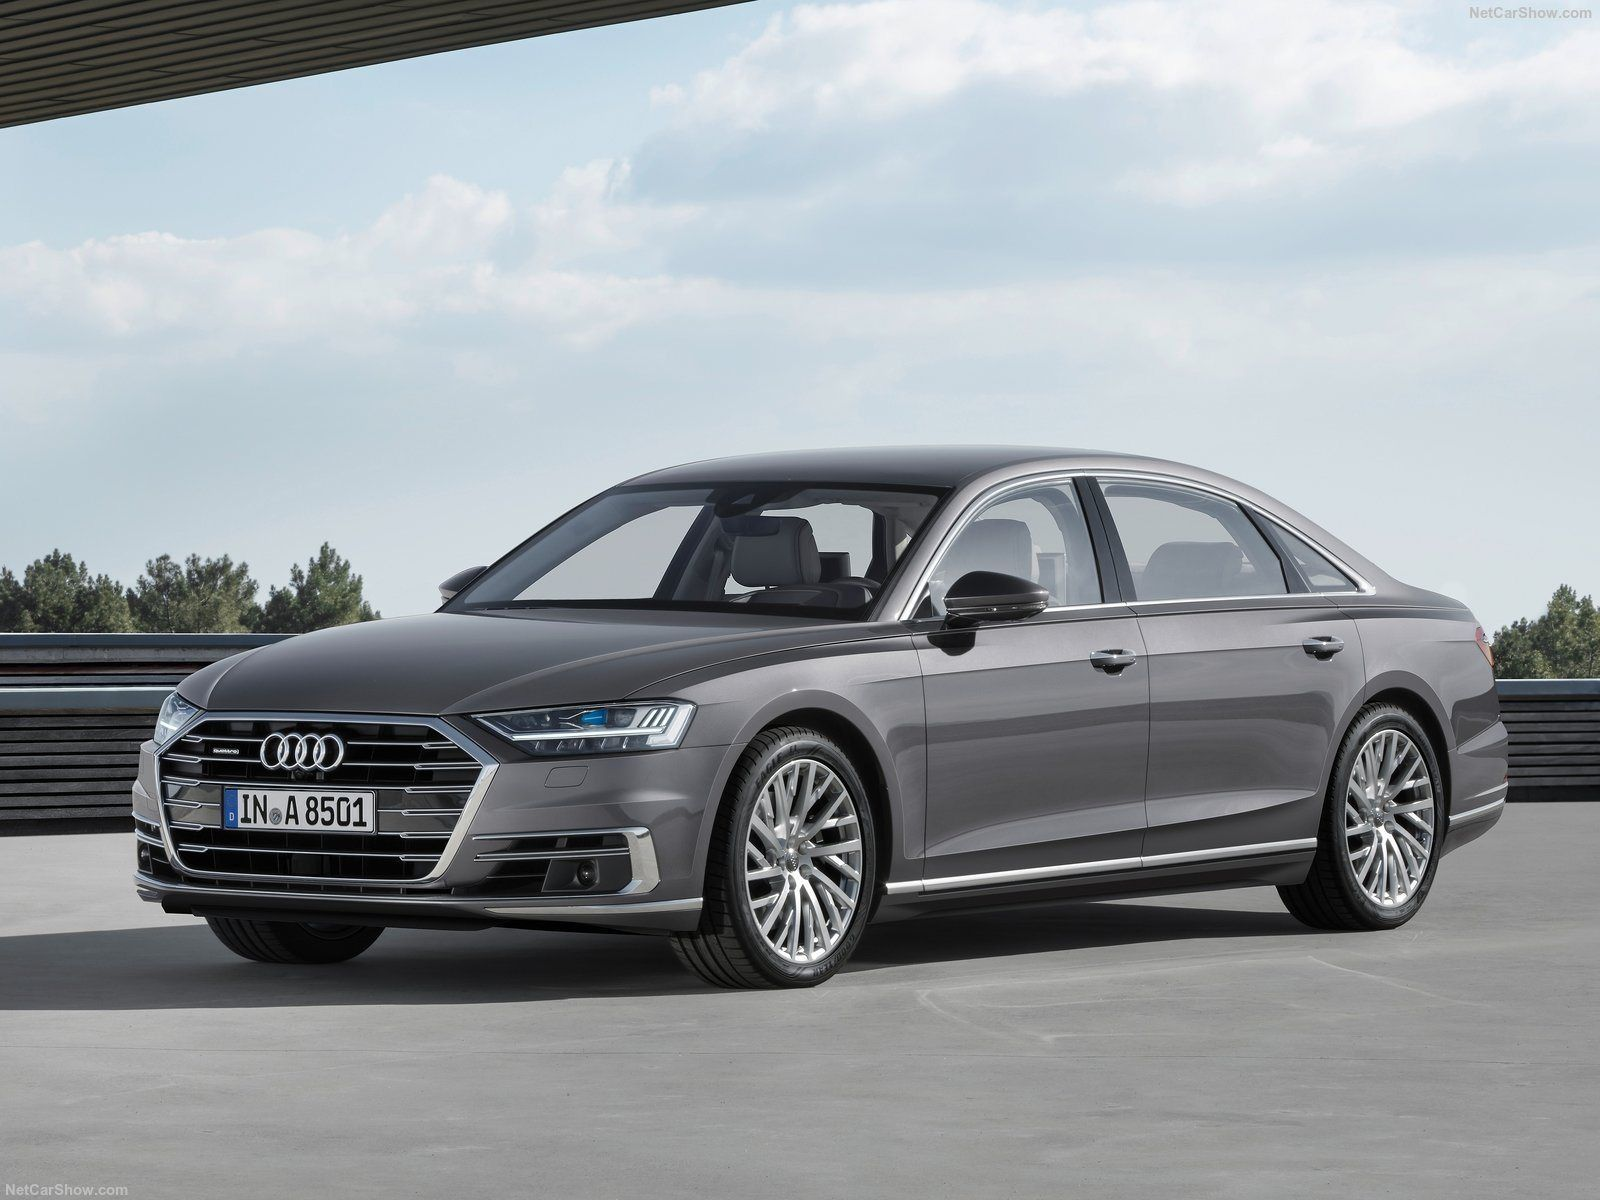 Audi A8 Review In 2020 Audi A8 Audi For Sale Luxury Hybrid Cars